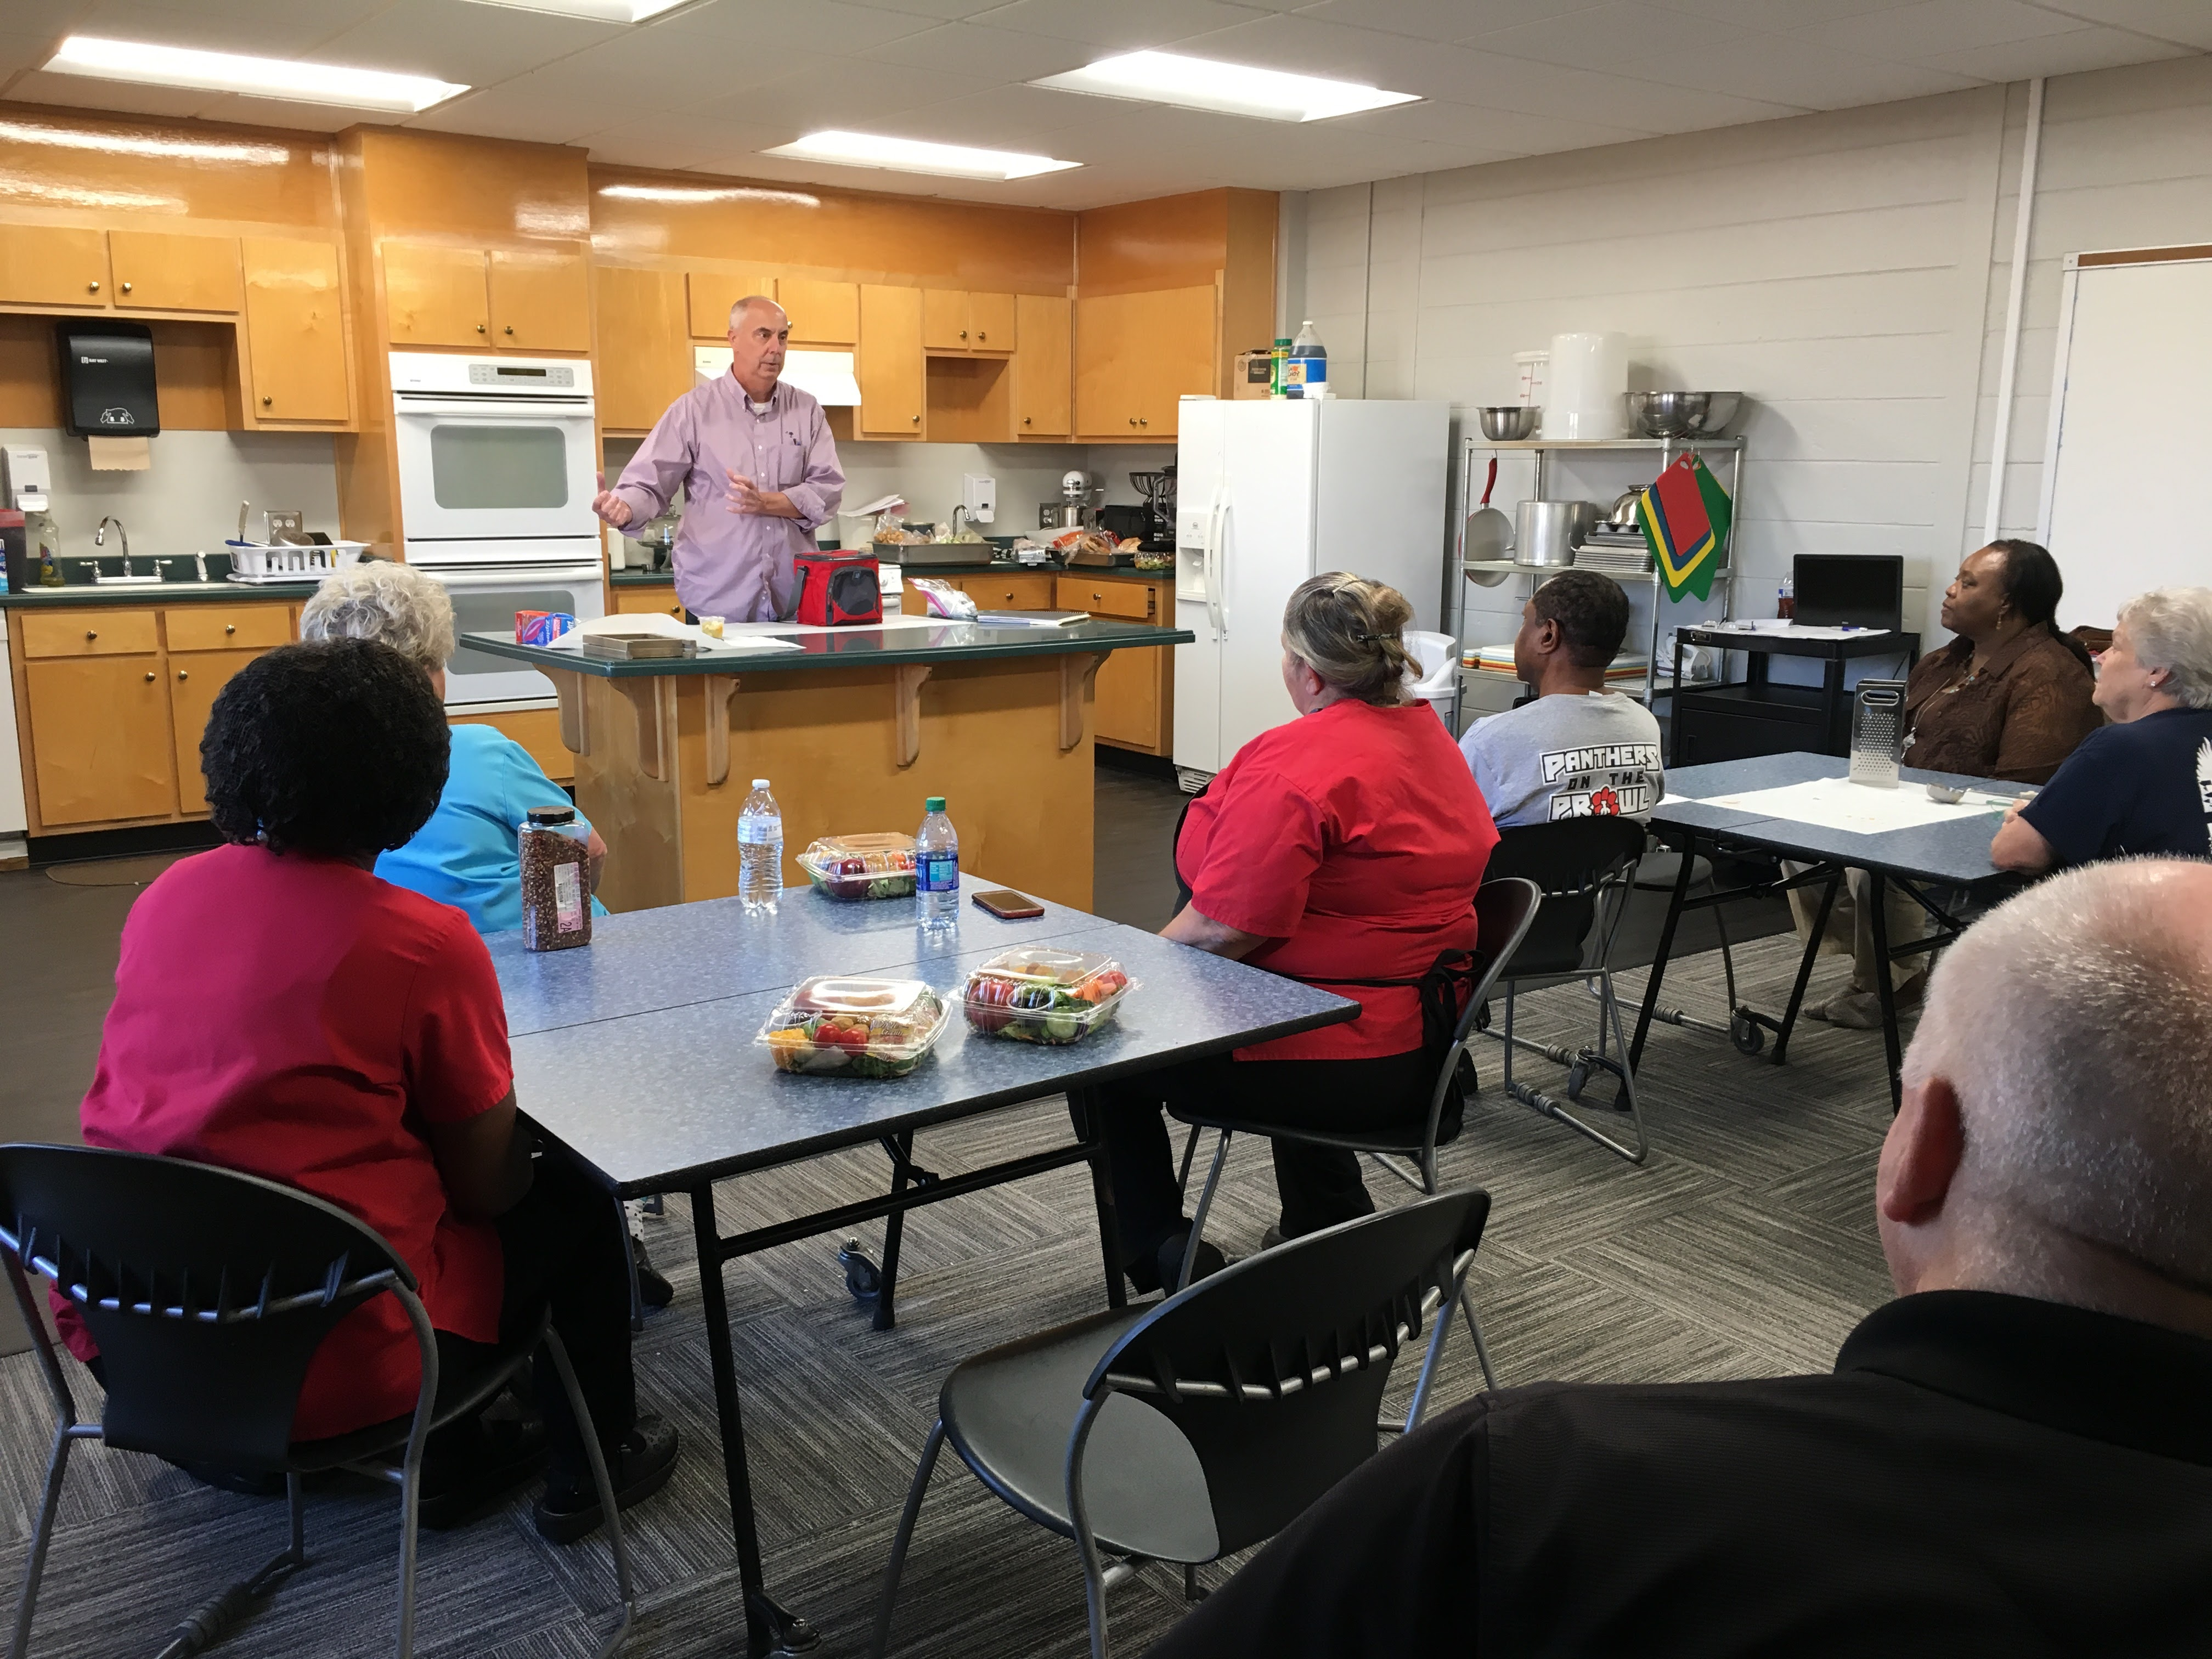 Mark Hungarland talked to the school nutrition managers about his Georgia-grown products, and he cited increasing interest in locally-sourced food and the history and heritage of pickling. The managers met Sept. 20 in the Gordon Street Center's test kitchen.